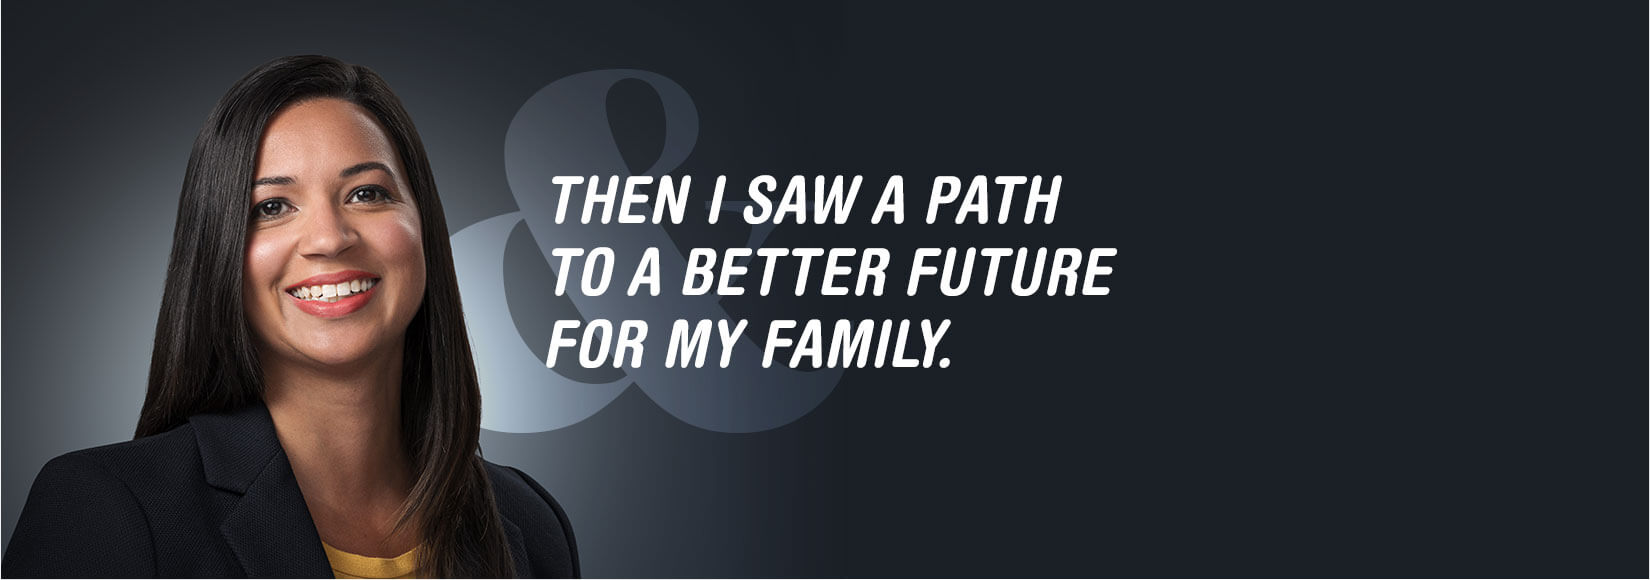 Then I saw a Path to a Better Future for my Family.